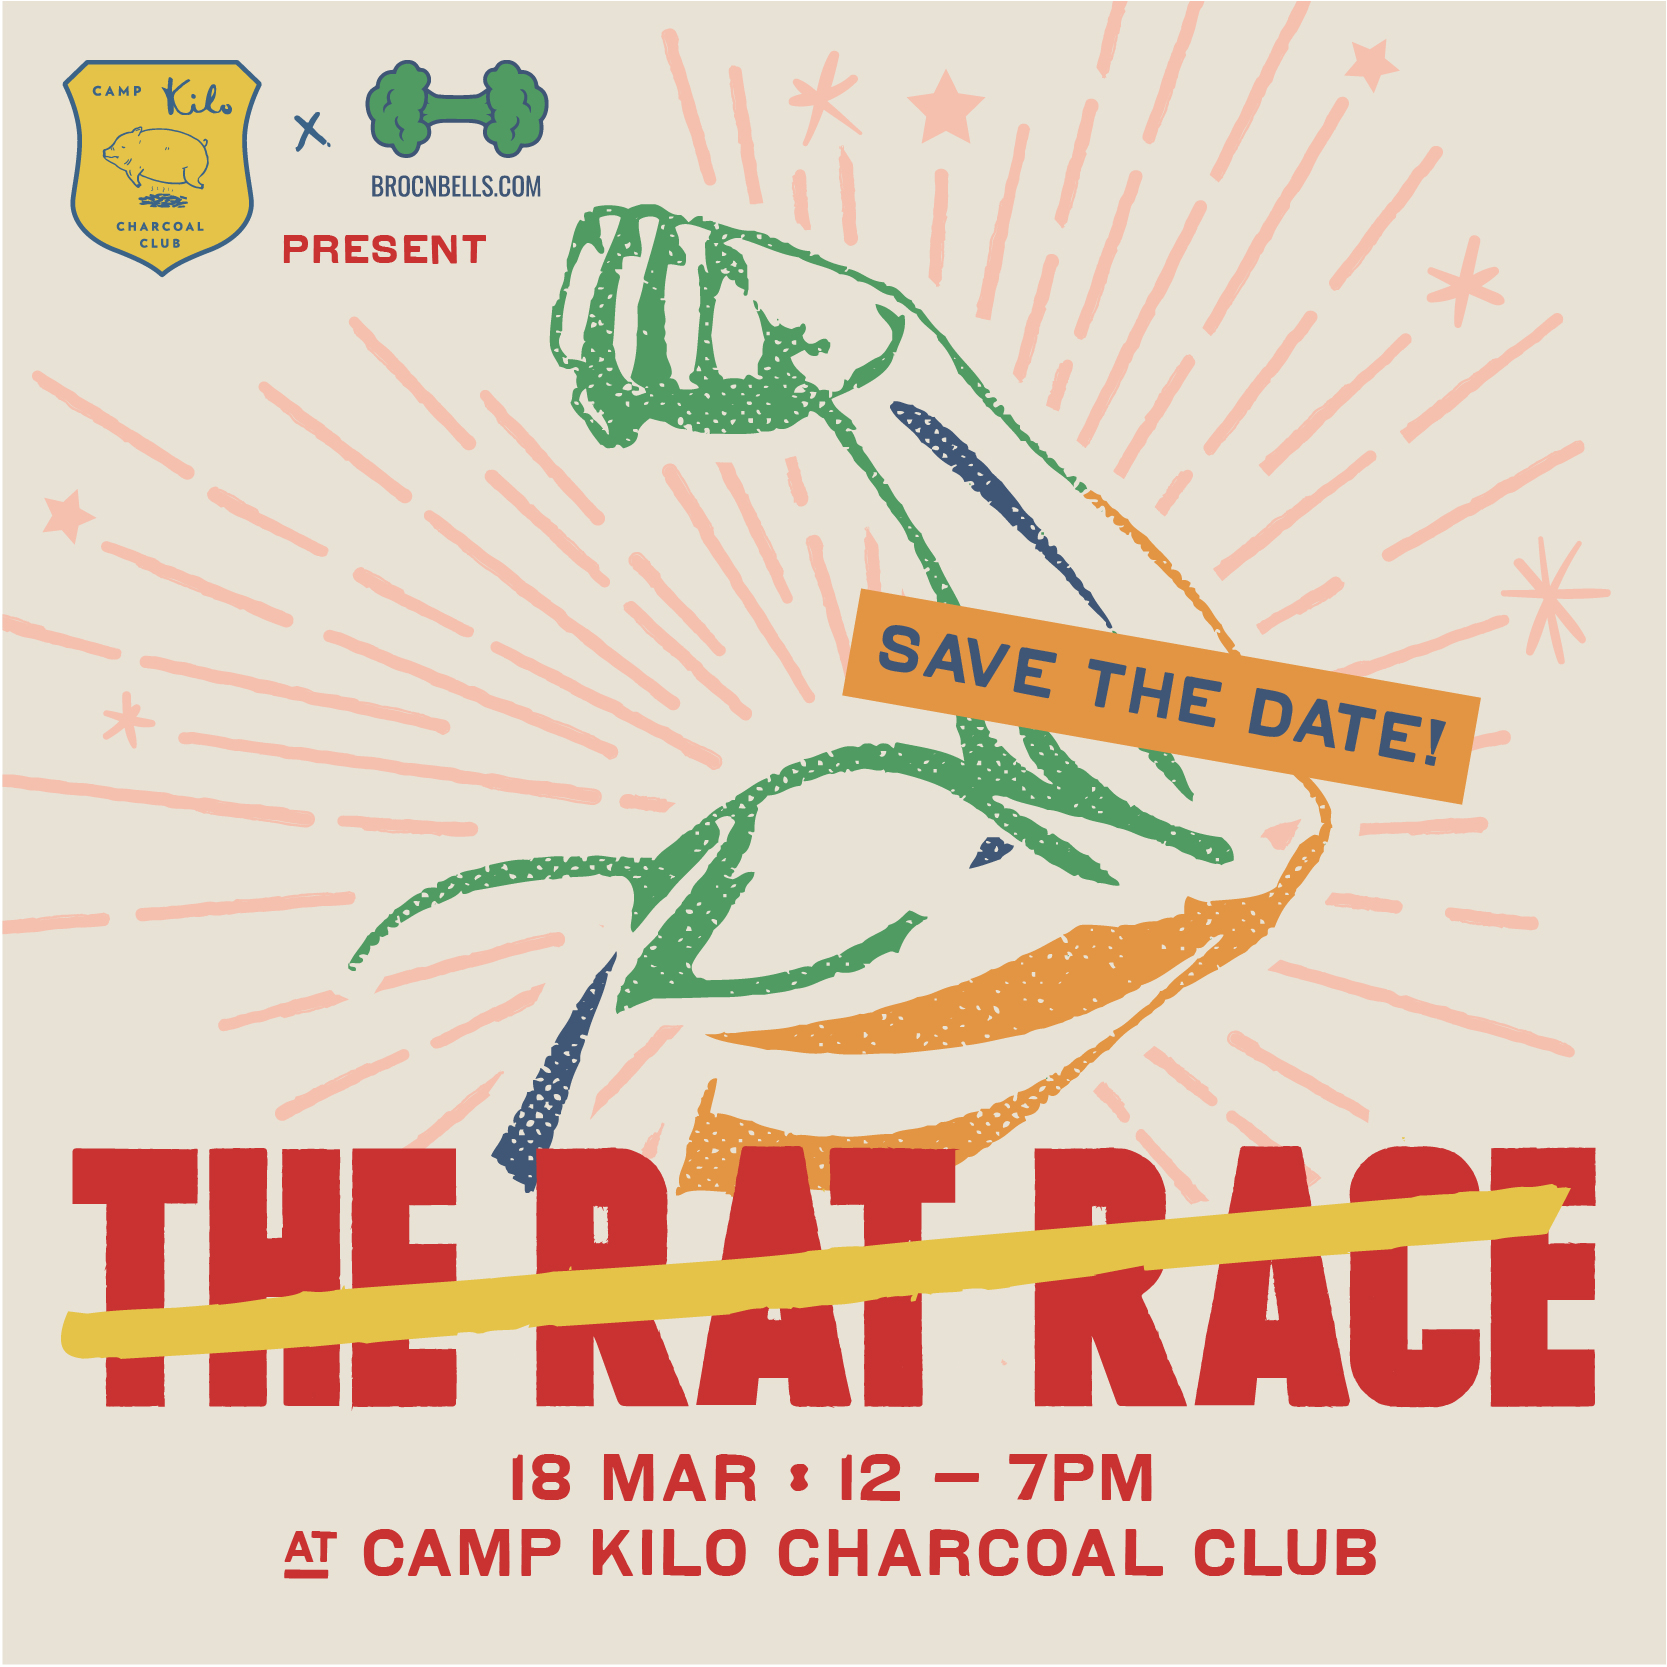 beat the rat race camp kilo charcoal club